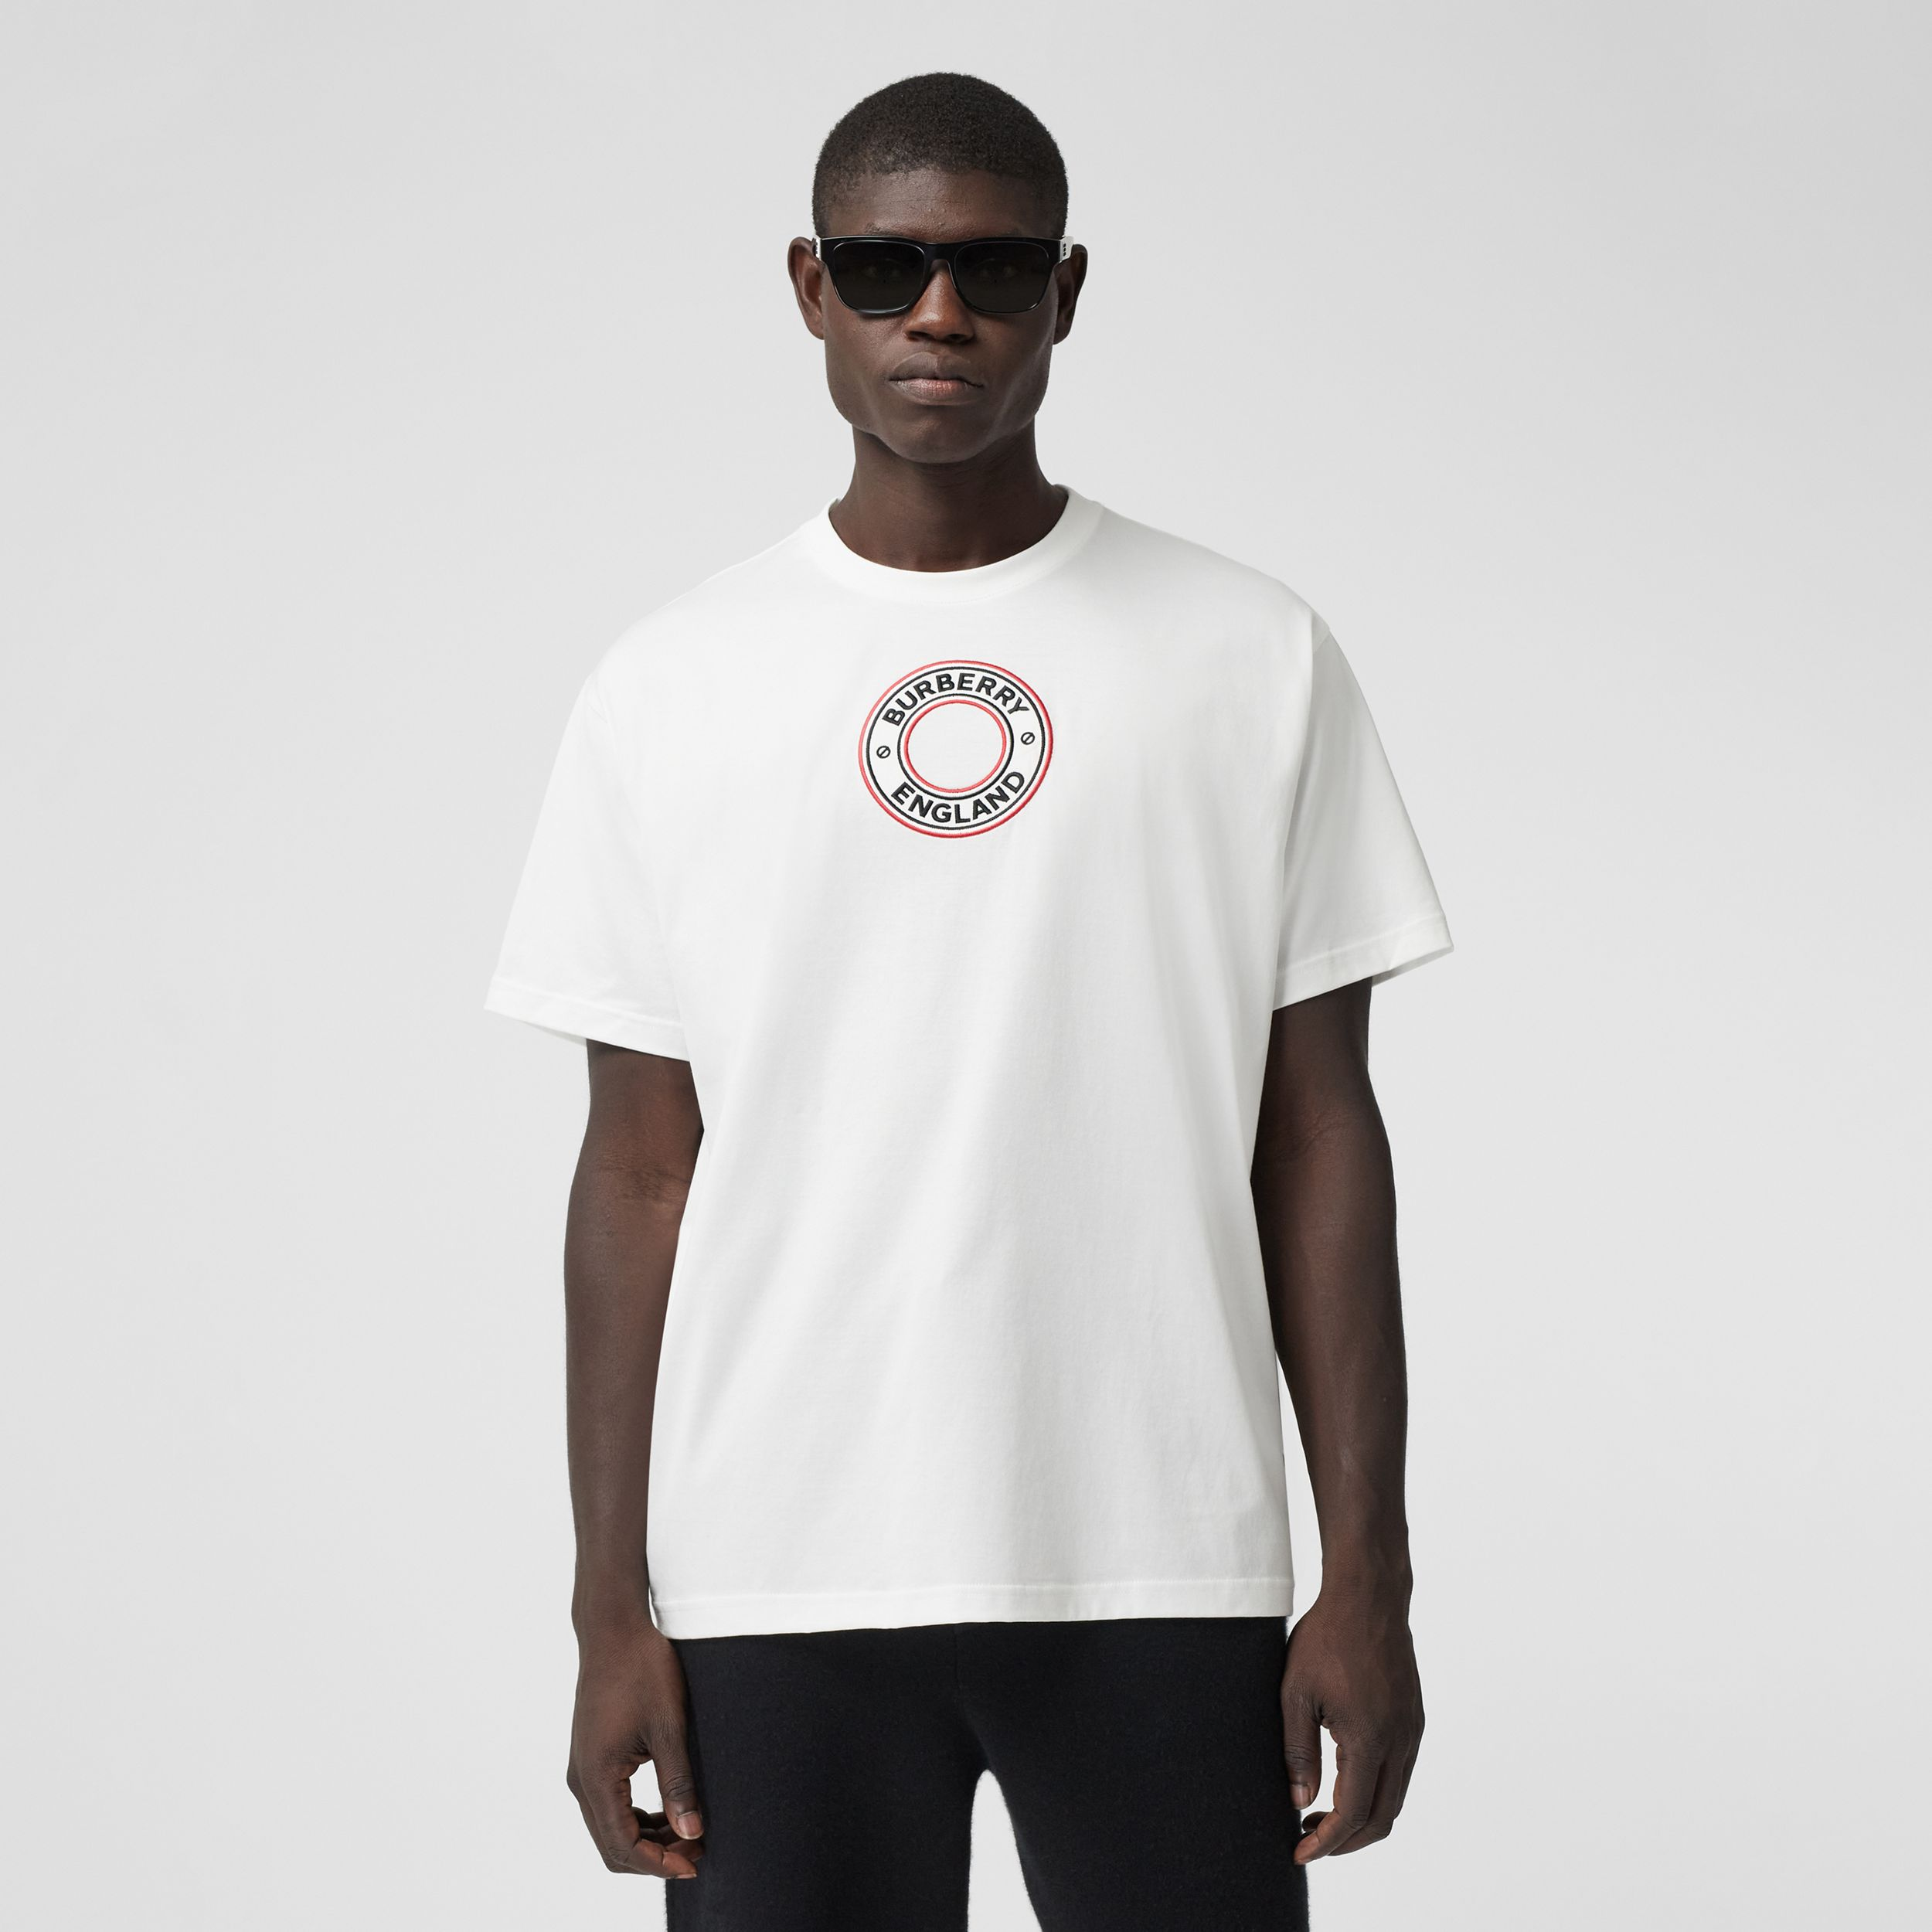 Logo Graphic Appliqué Cotton Oversized T-shirt in White - Men | Burberry - 1